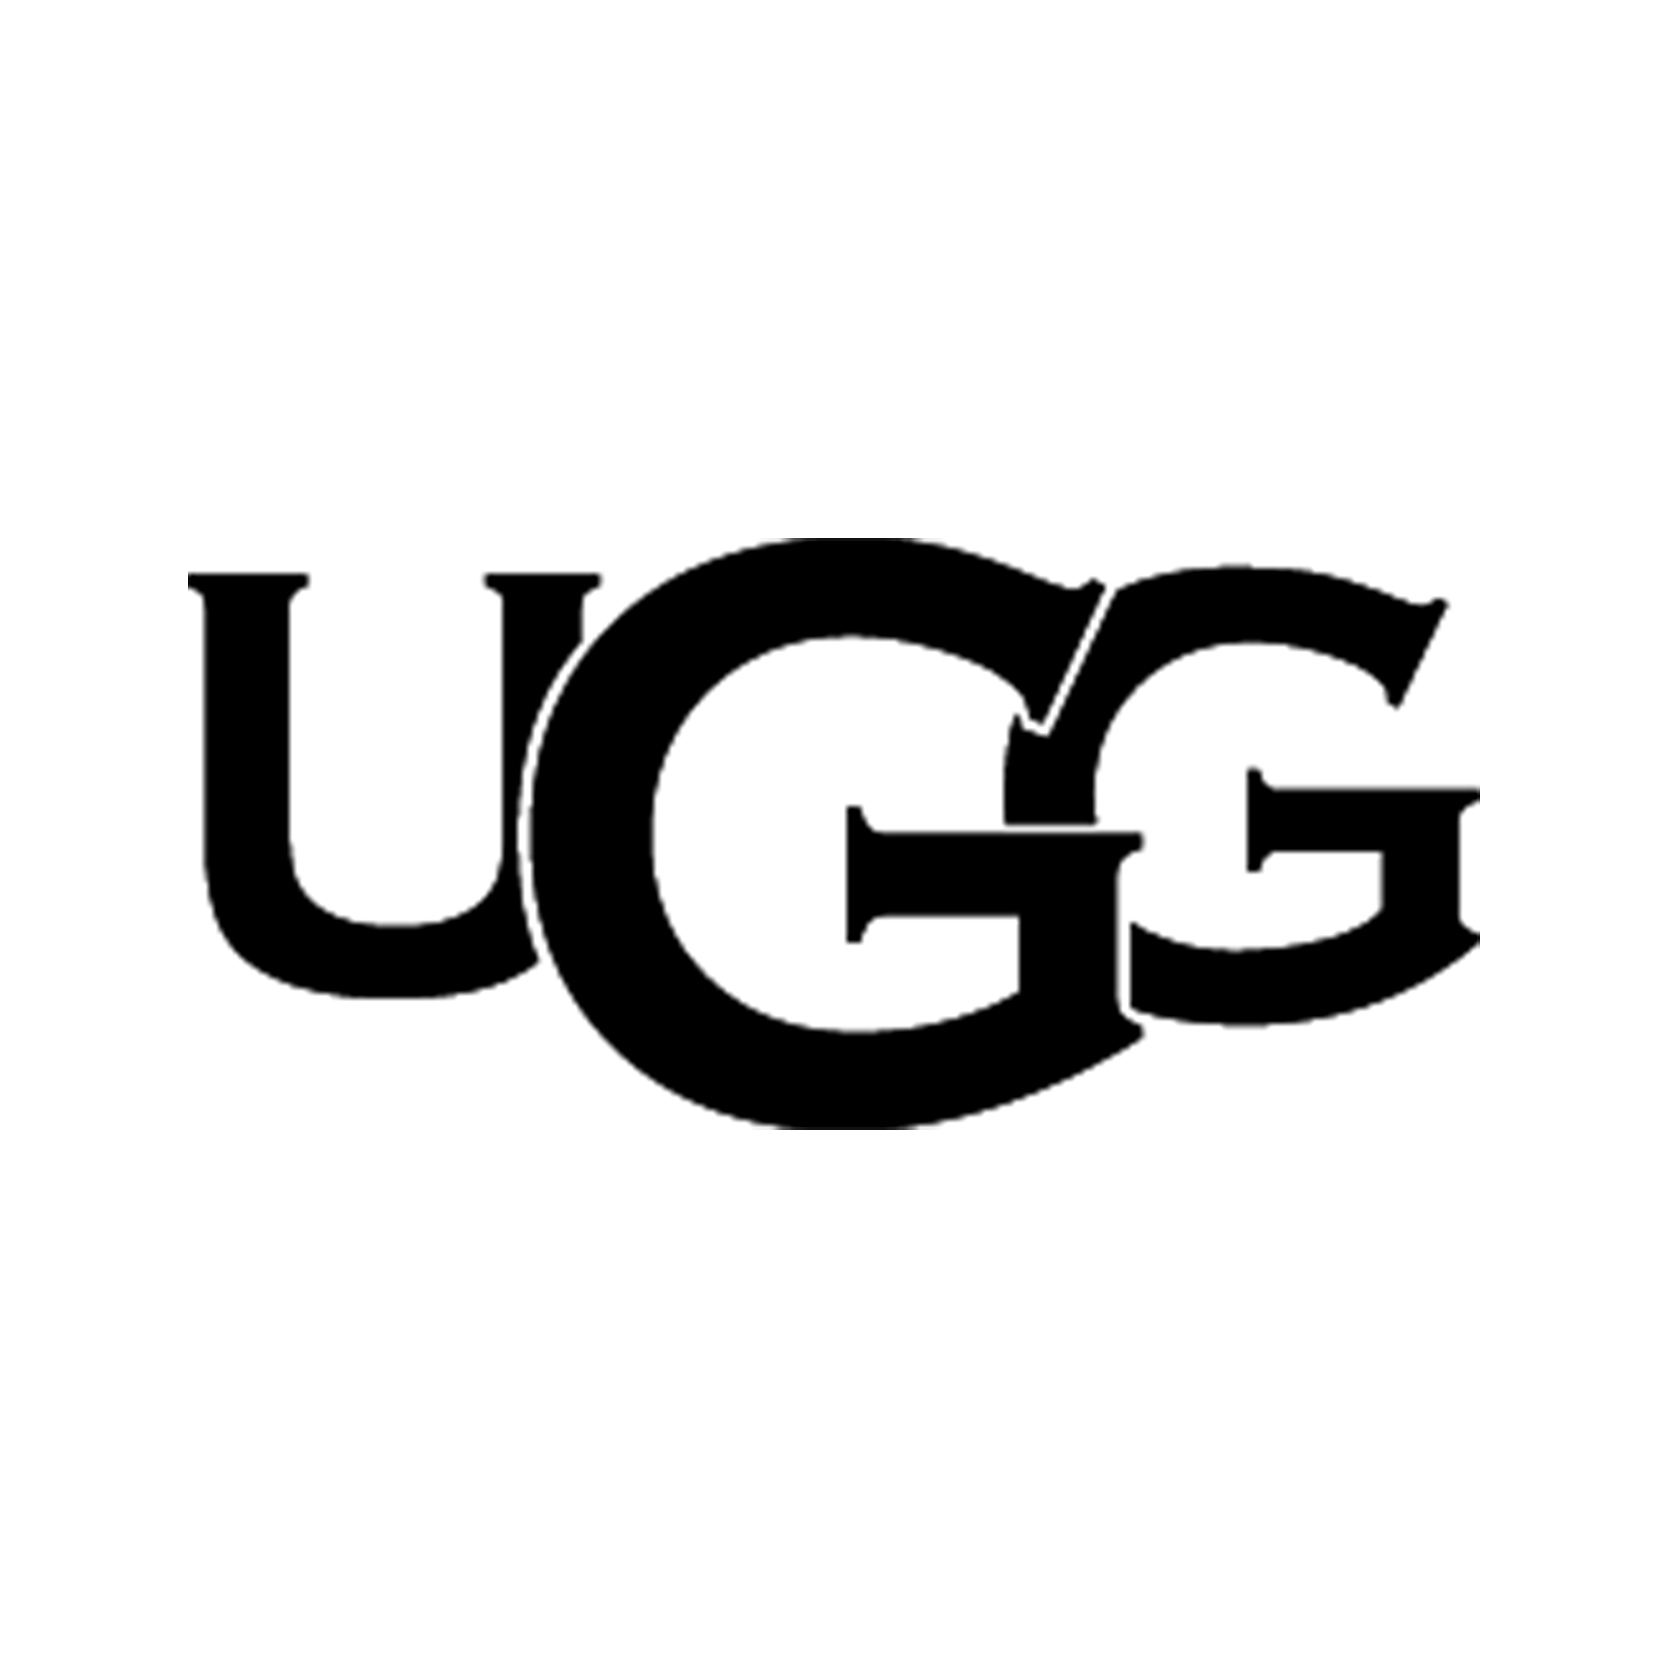 UGG - Sales, Coupons, Vouchers, Bargains